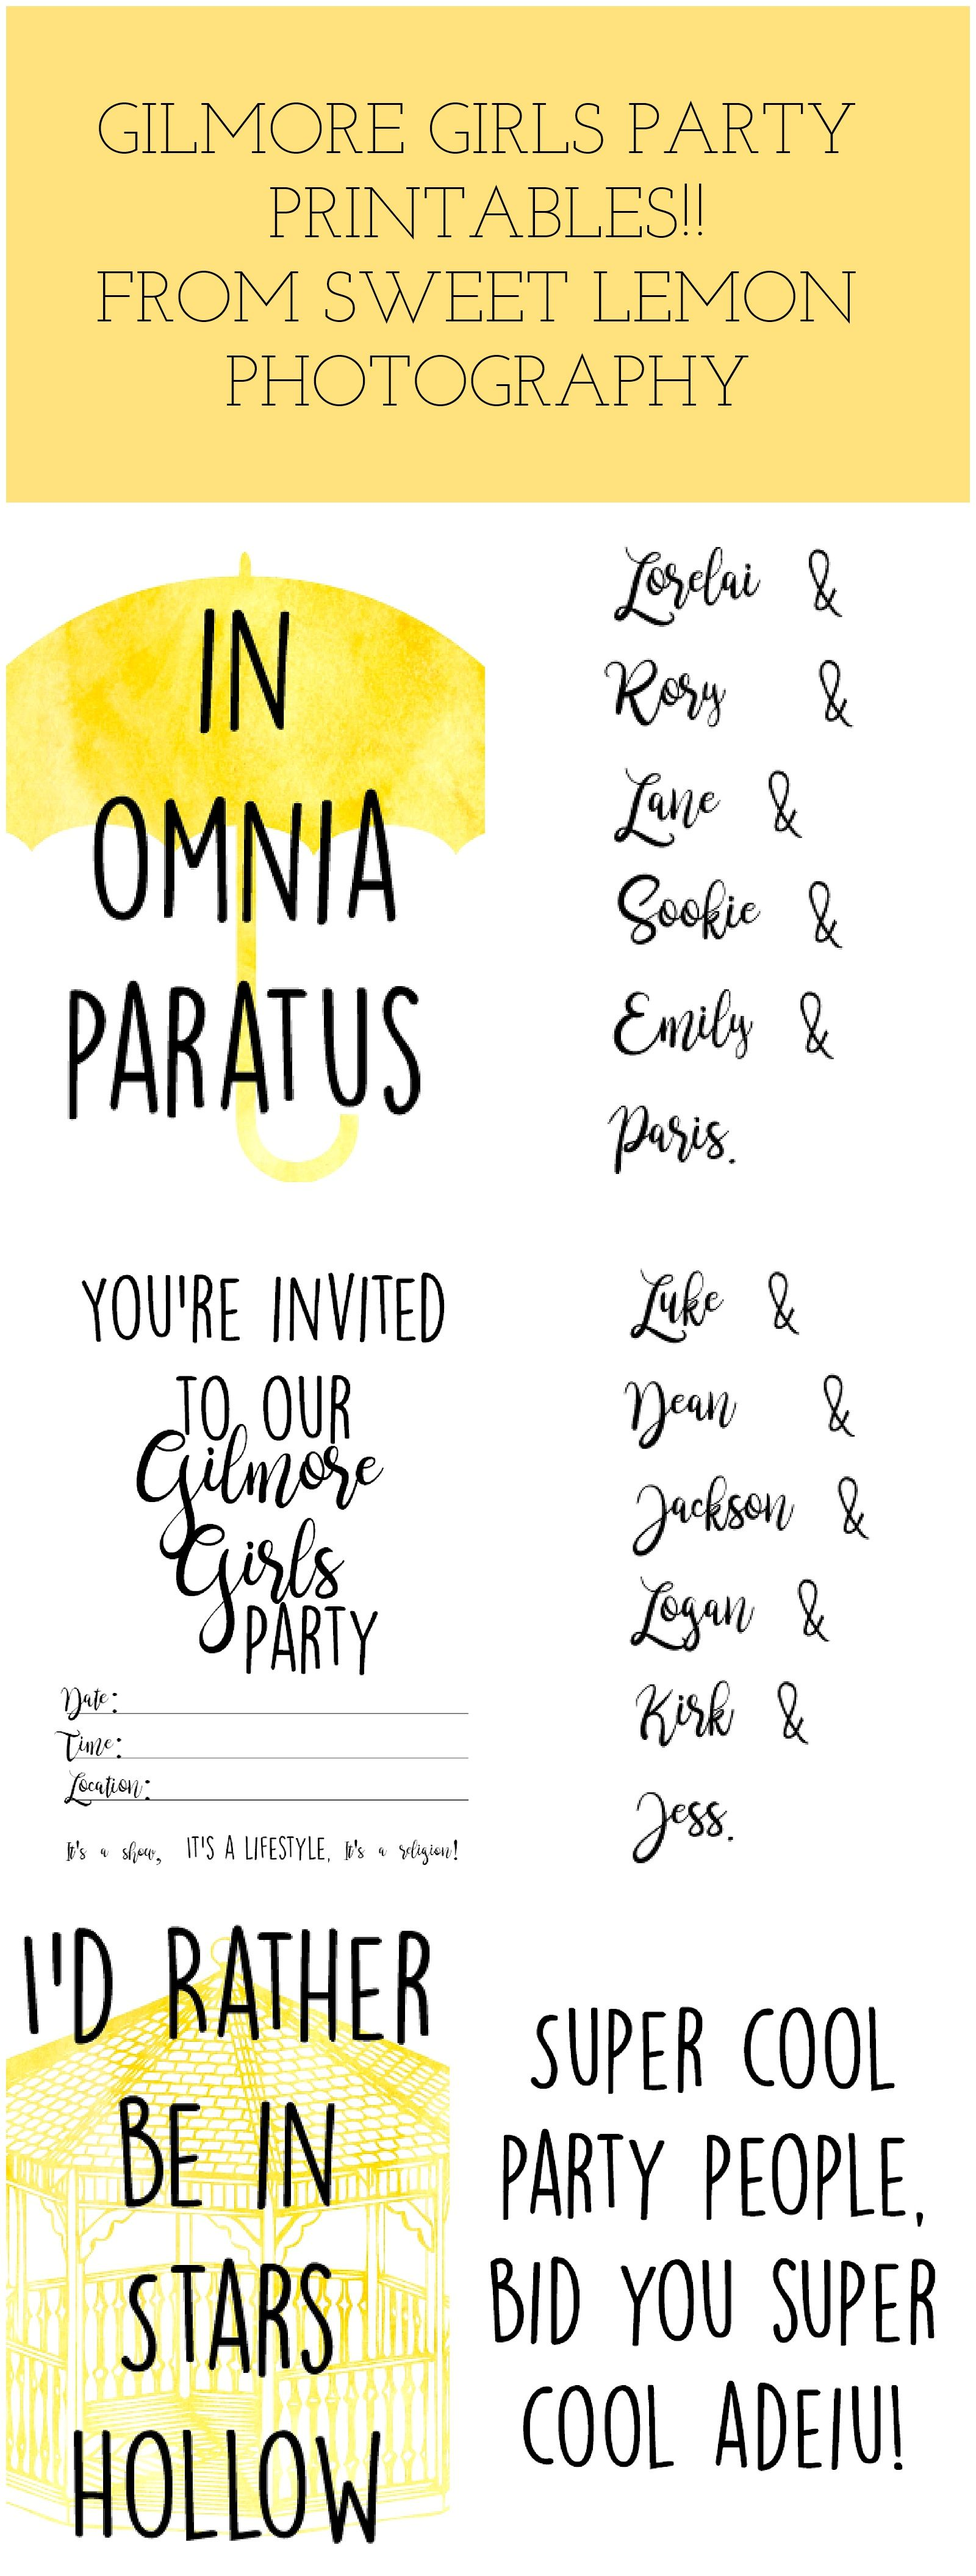 Gilmore Girls Party Invitations And Home Printables Id Rather Be